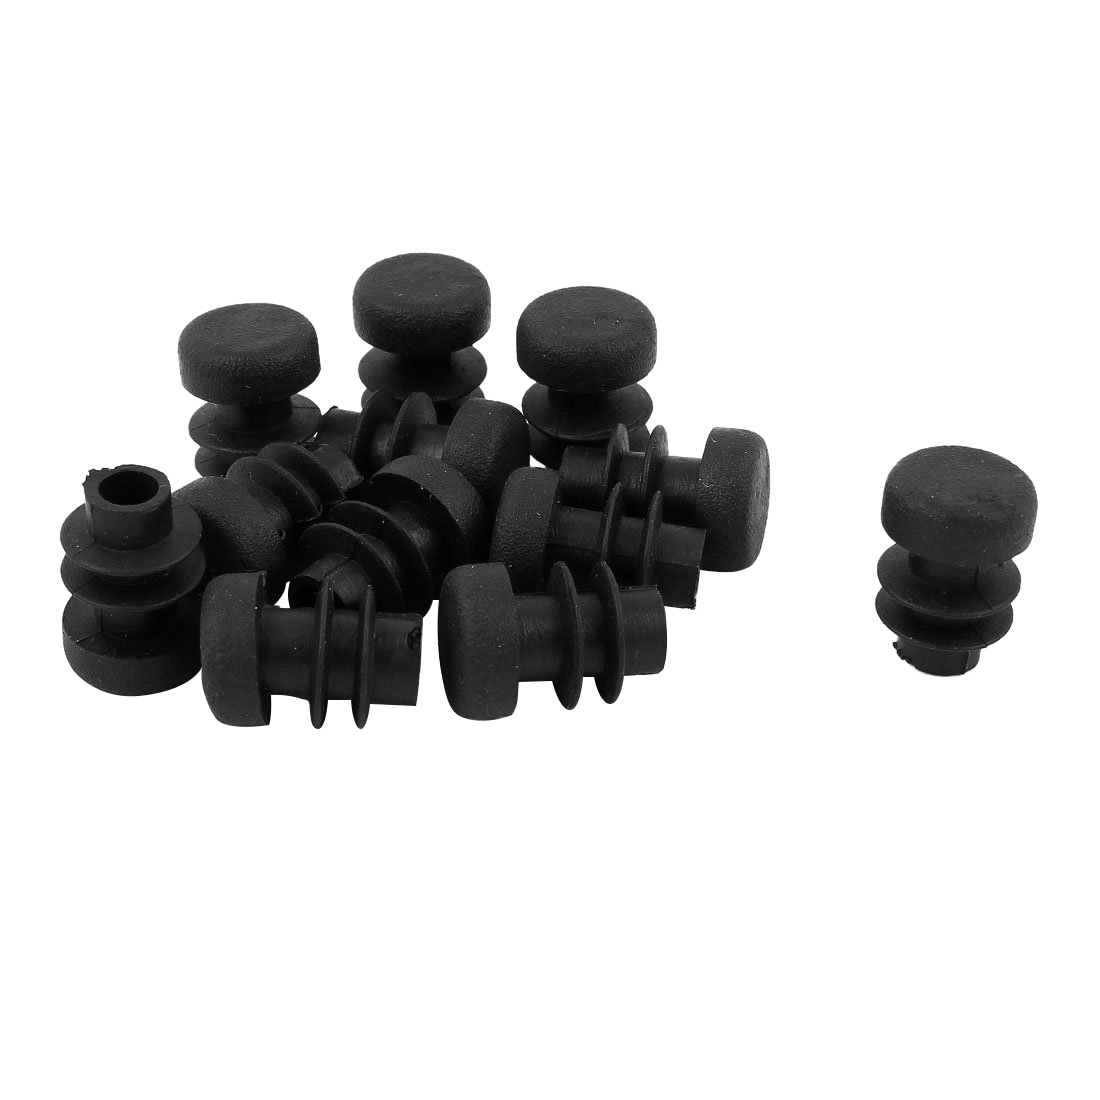 12 Pcs Plastic 12mm Pipe End Blanking Caps Bung Tube Insert Plug Round Black12 Pcs Plastic 12mm Pipe End Blanking Caps Bung Tube Insert Plug Round Black